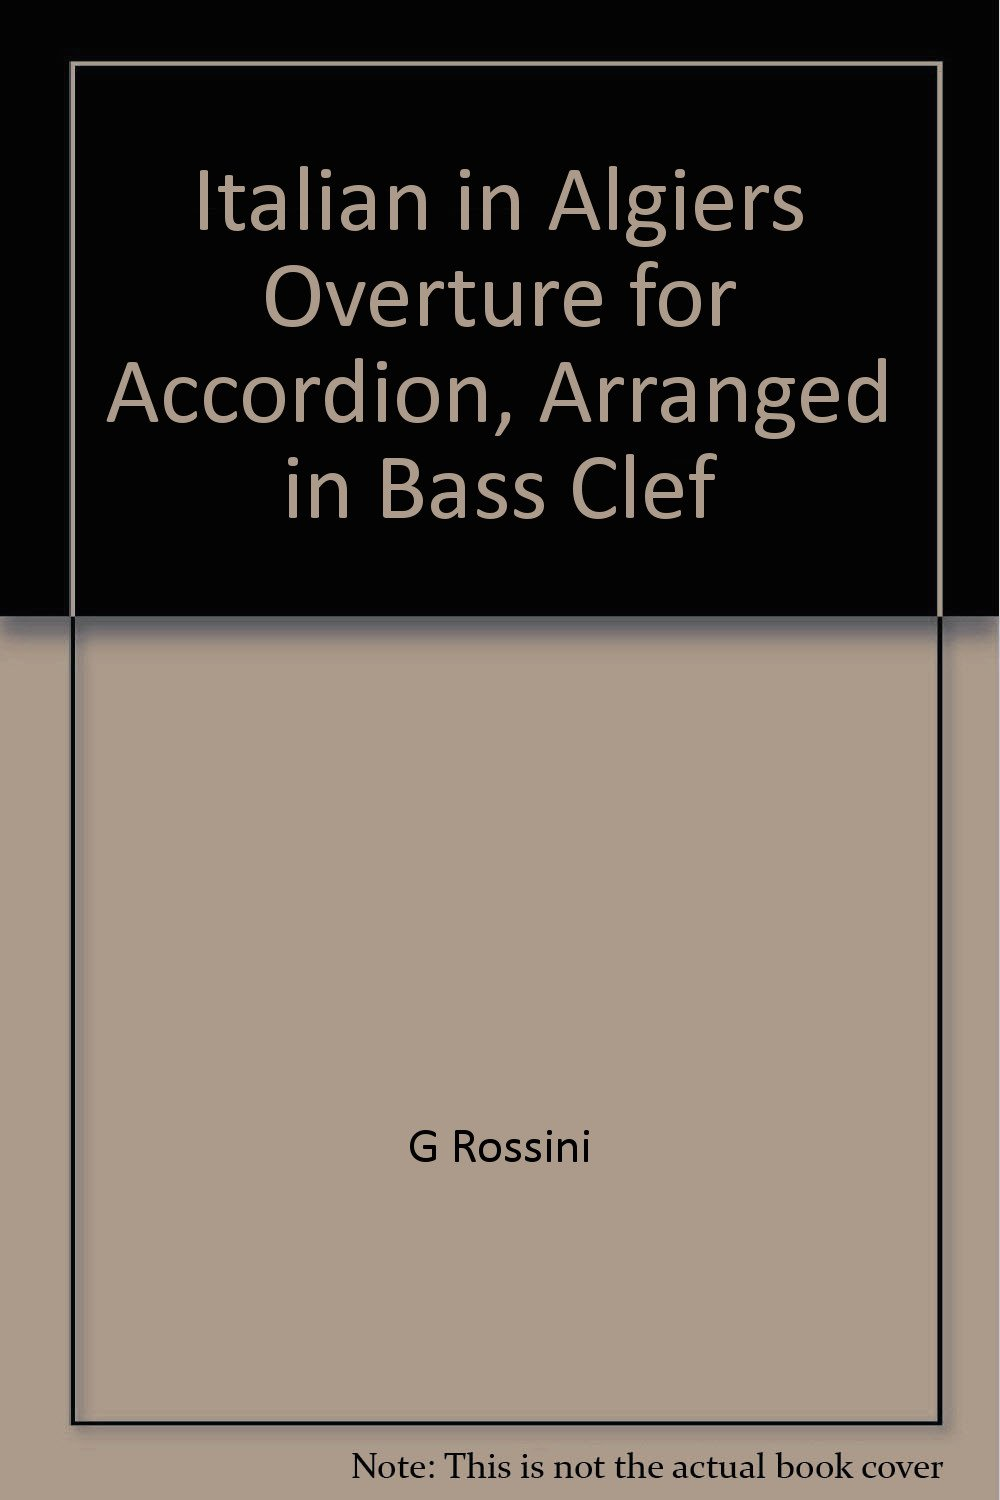 Italian in Algiers Overture for Accordion, Arranged in Bass